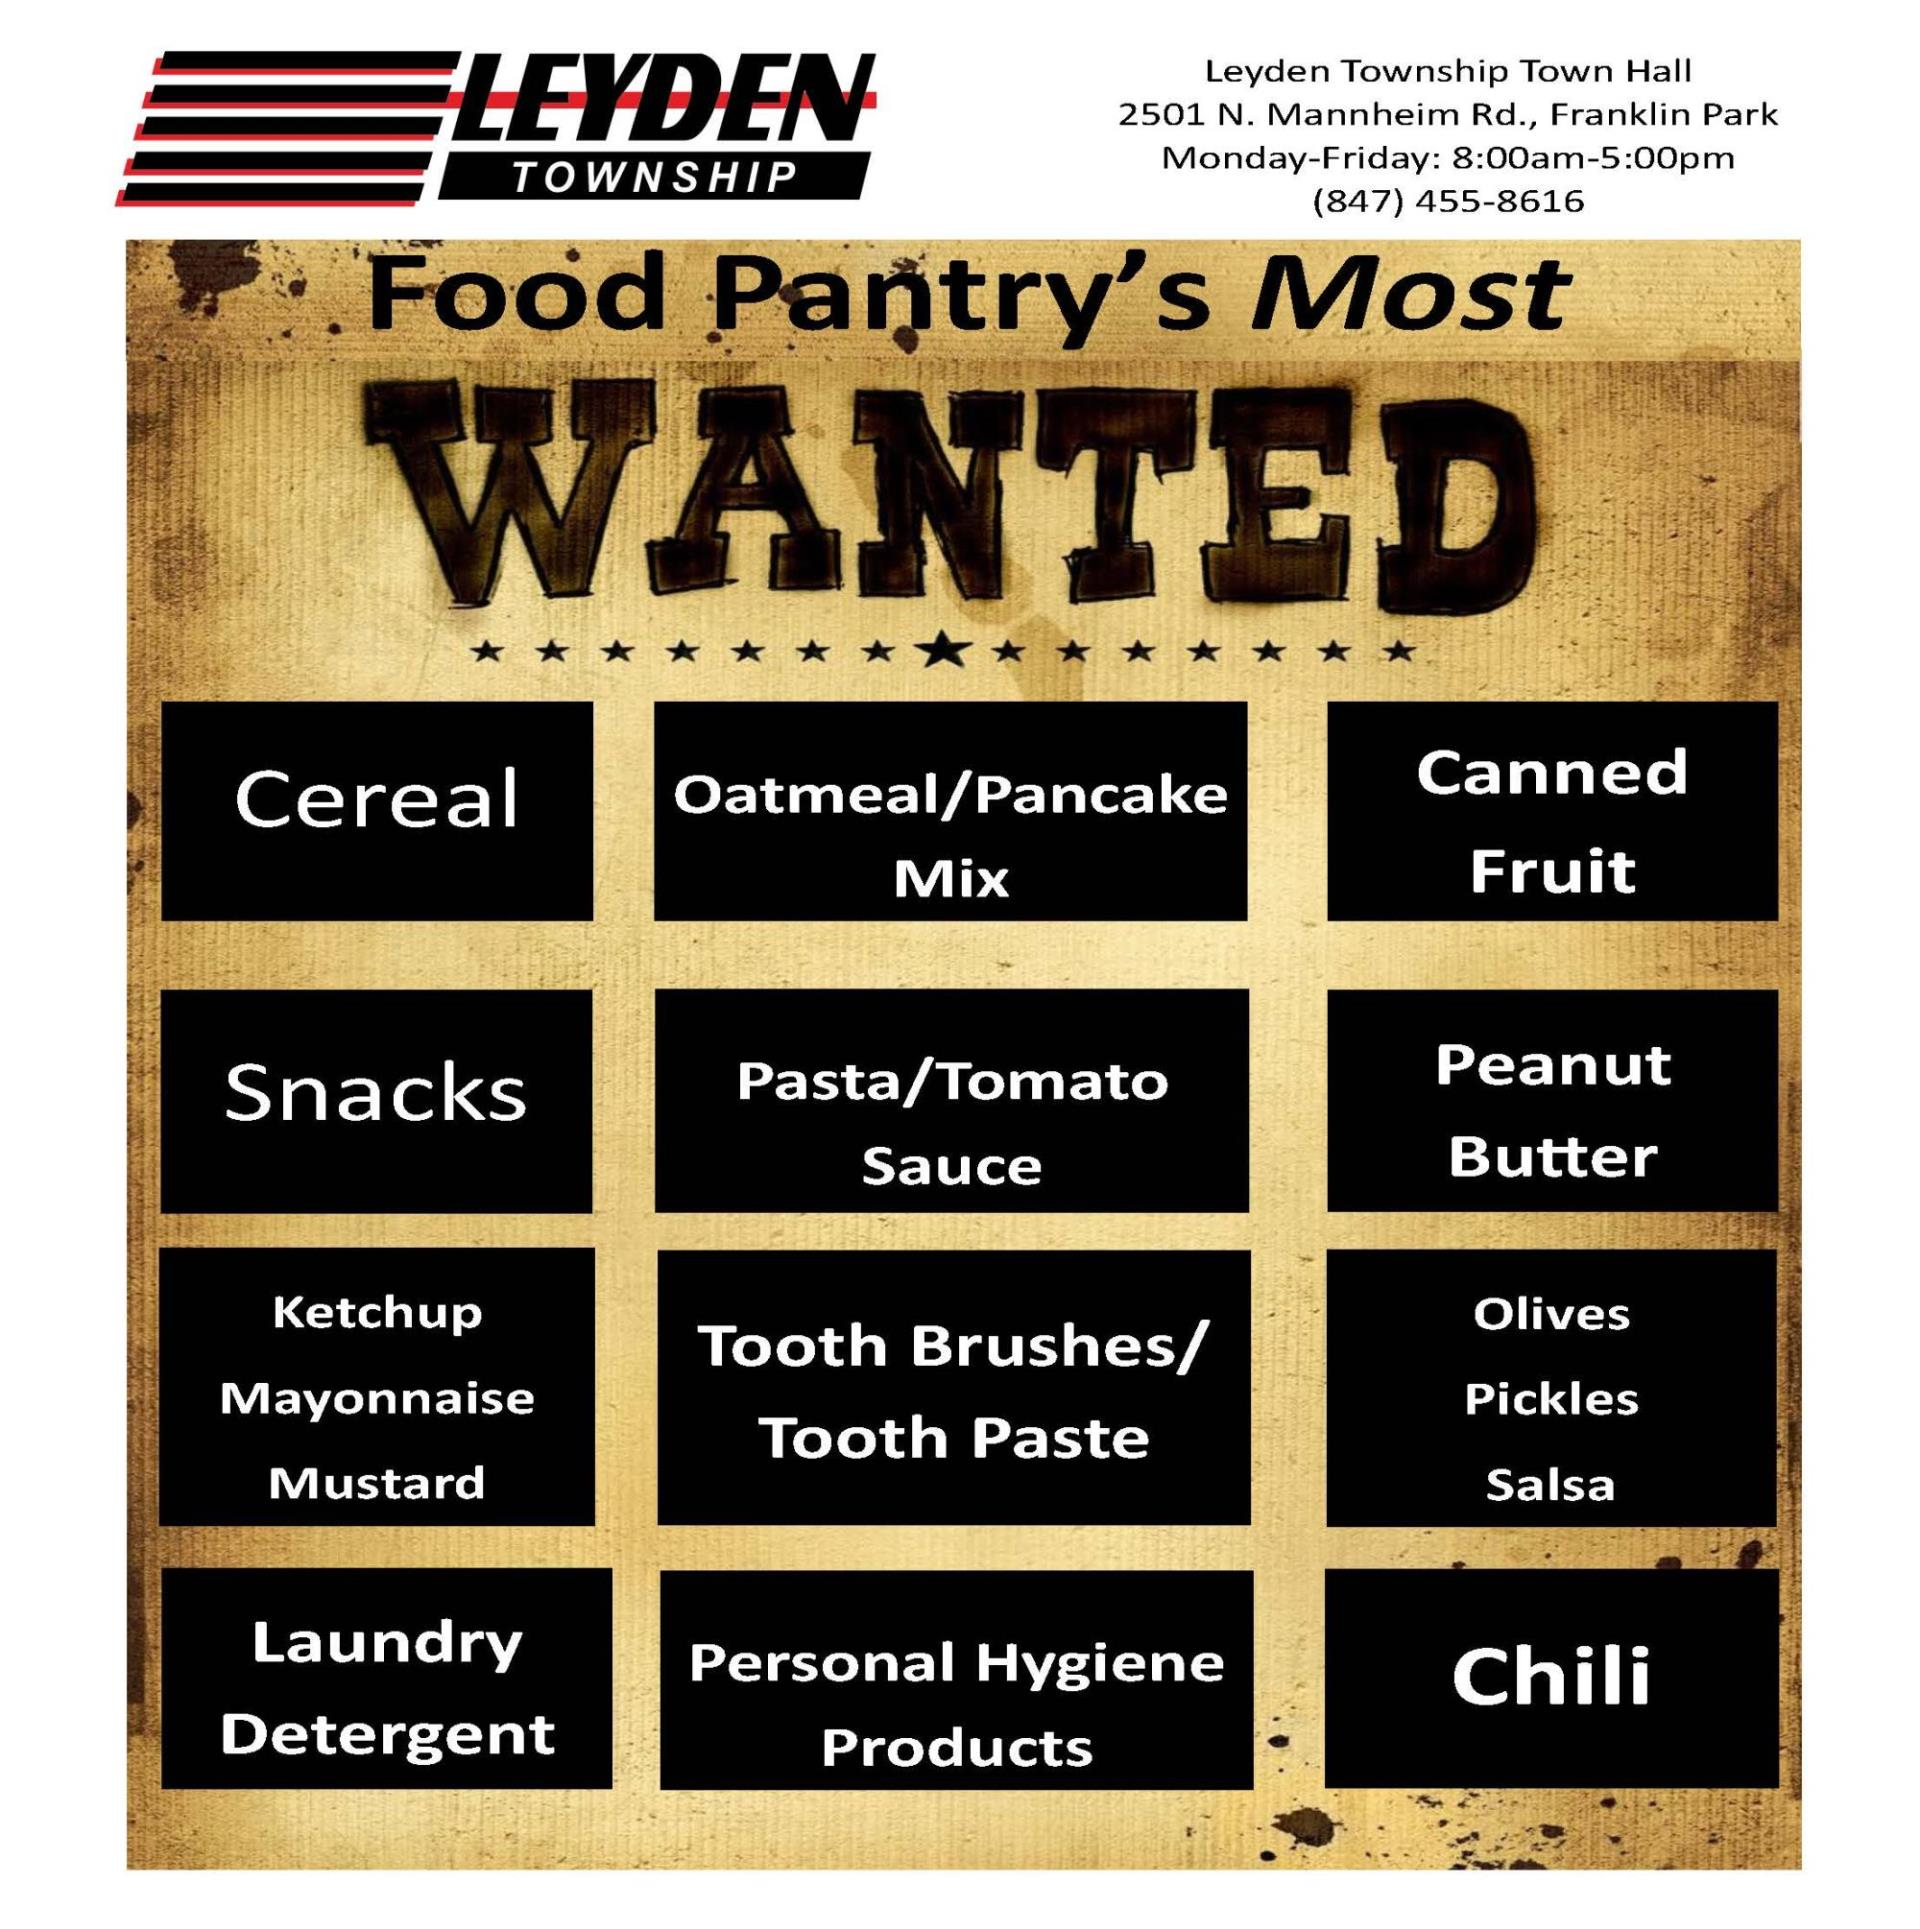 Food Pantry Most Wanted Items